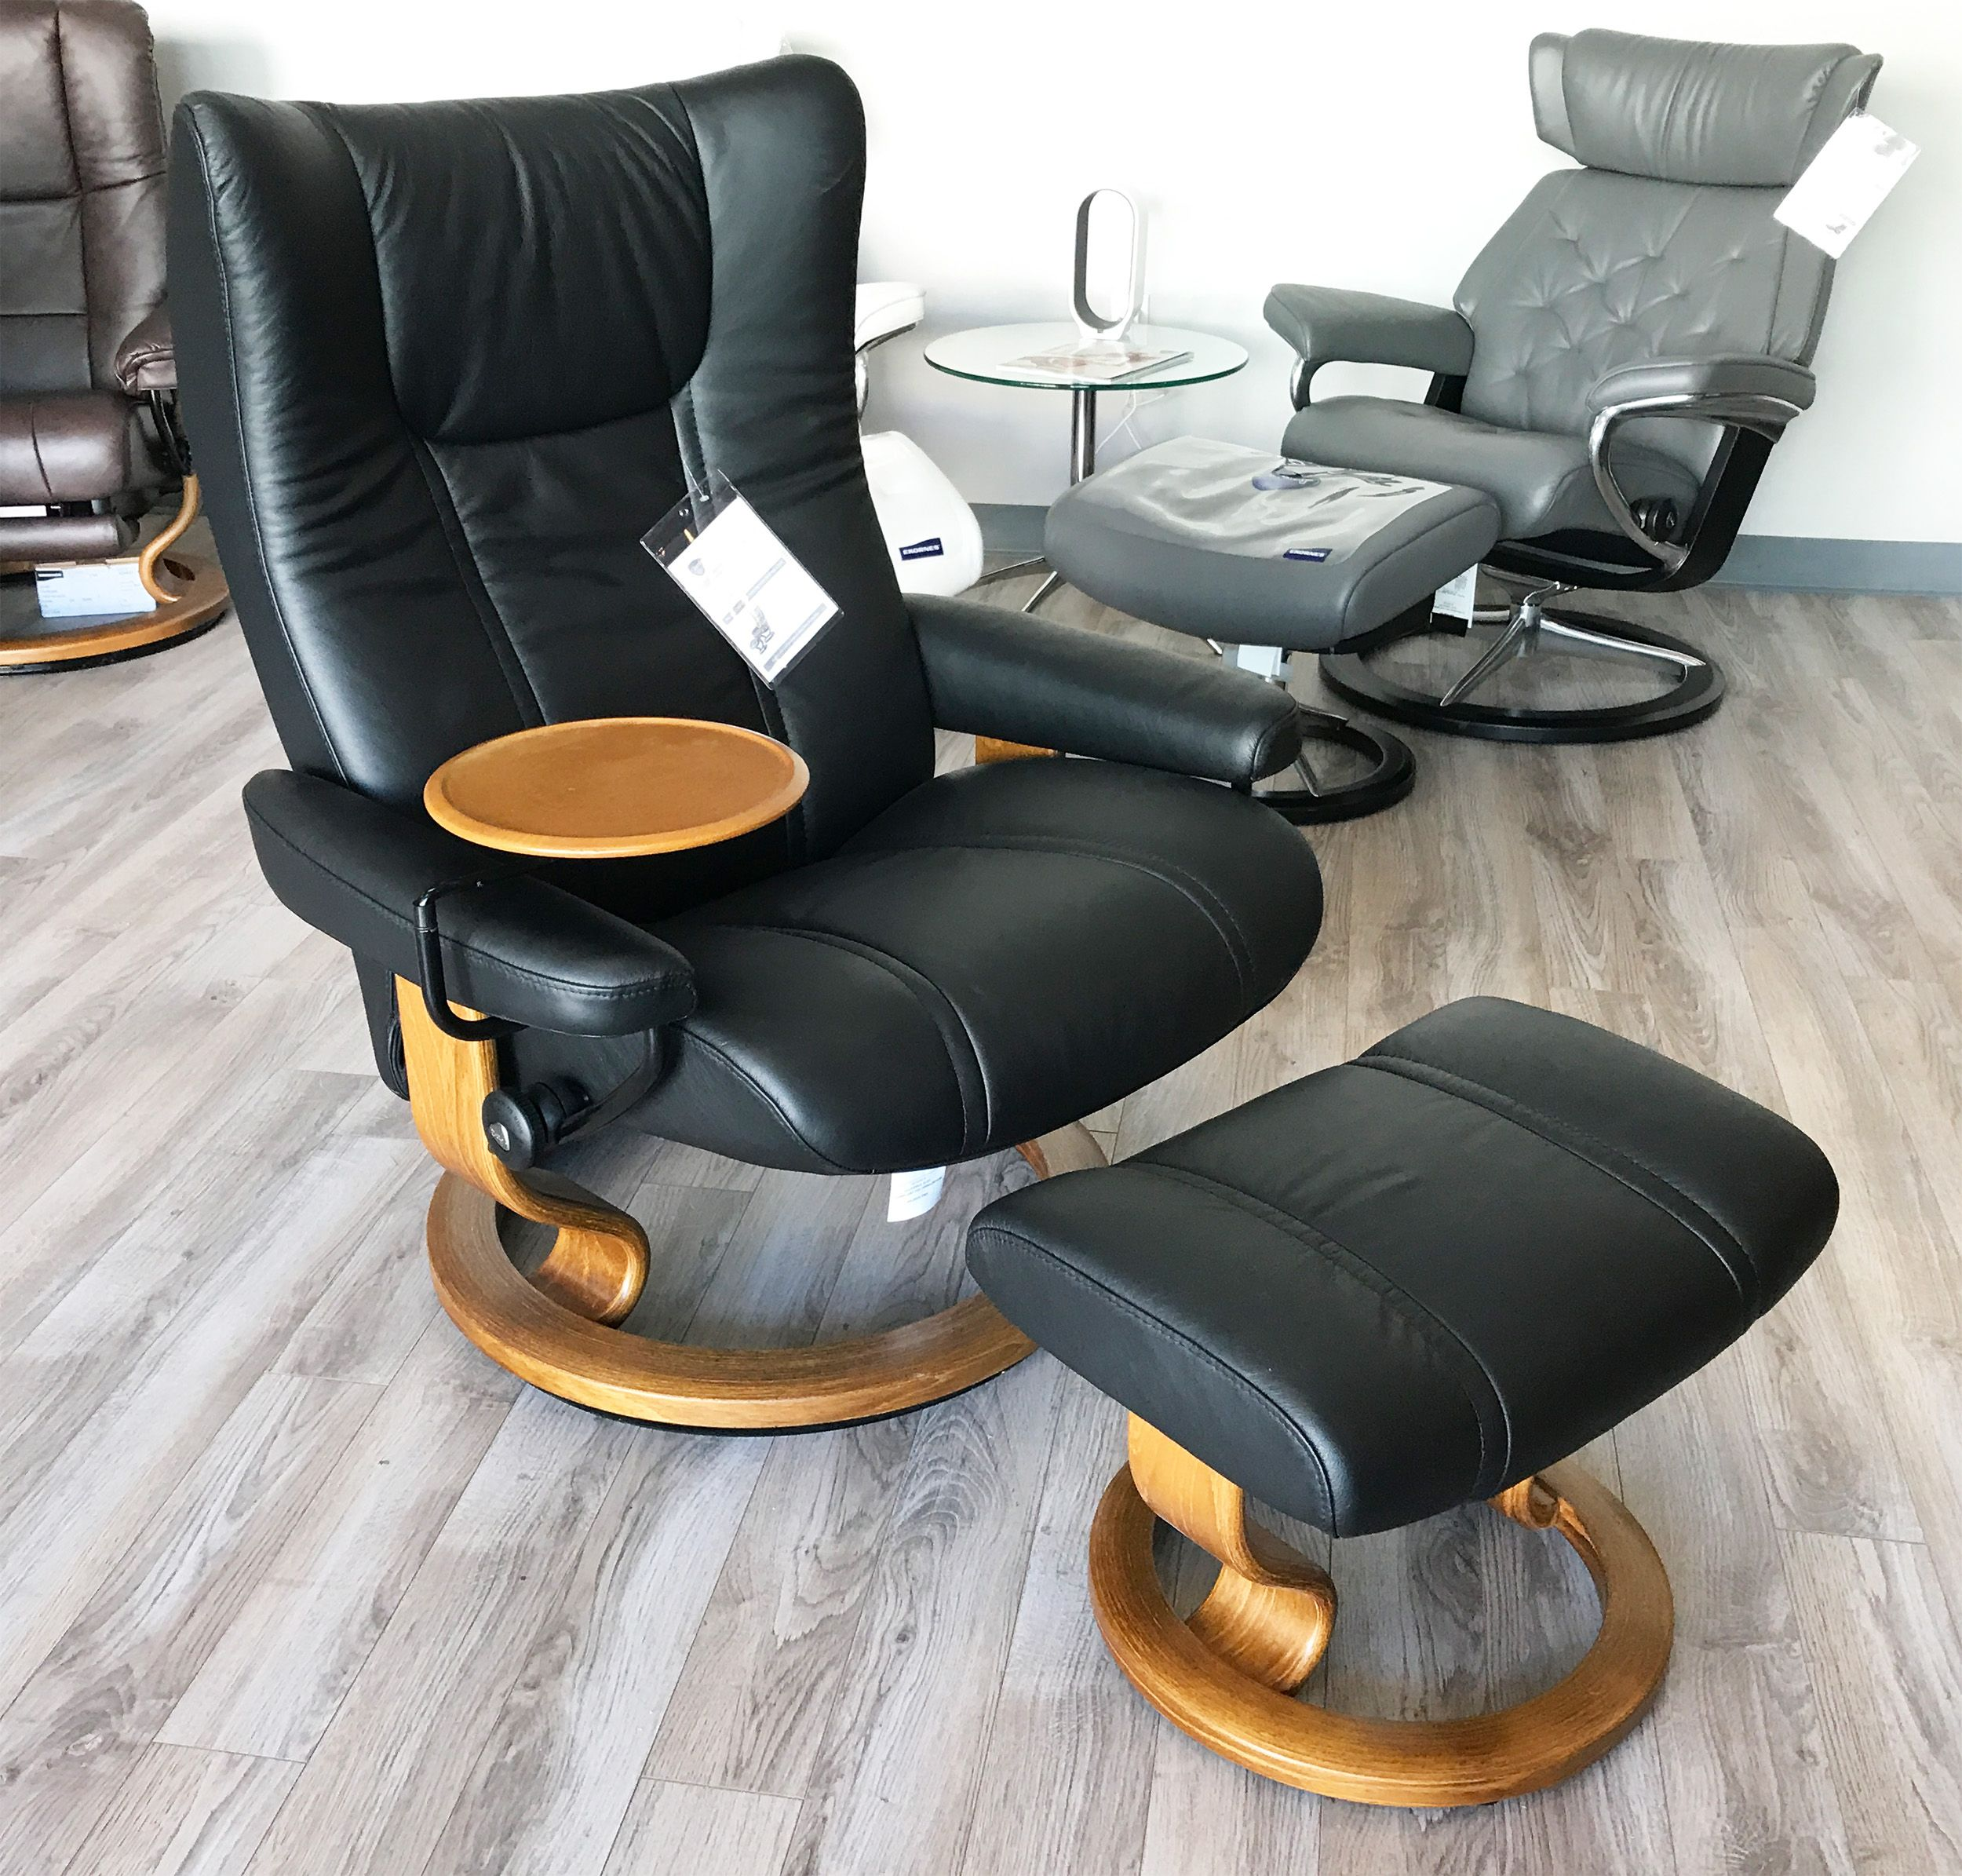 Small Chair With Ottoman: Small Leather Recliners With Ottoman